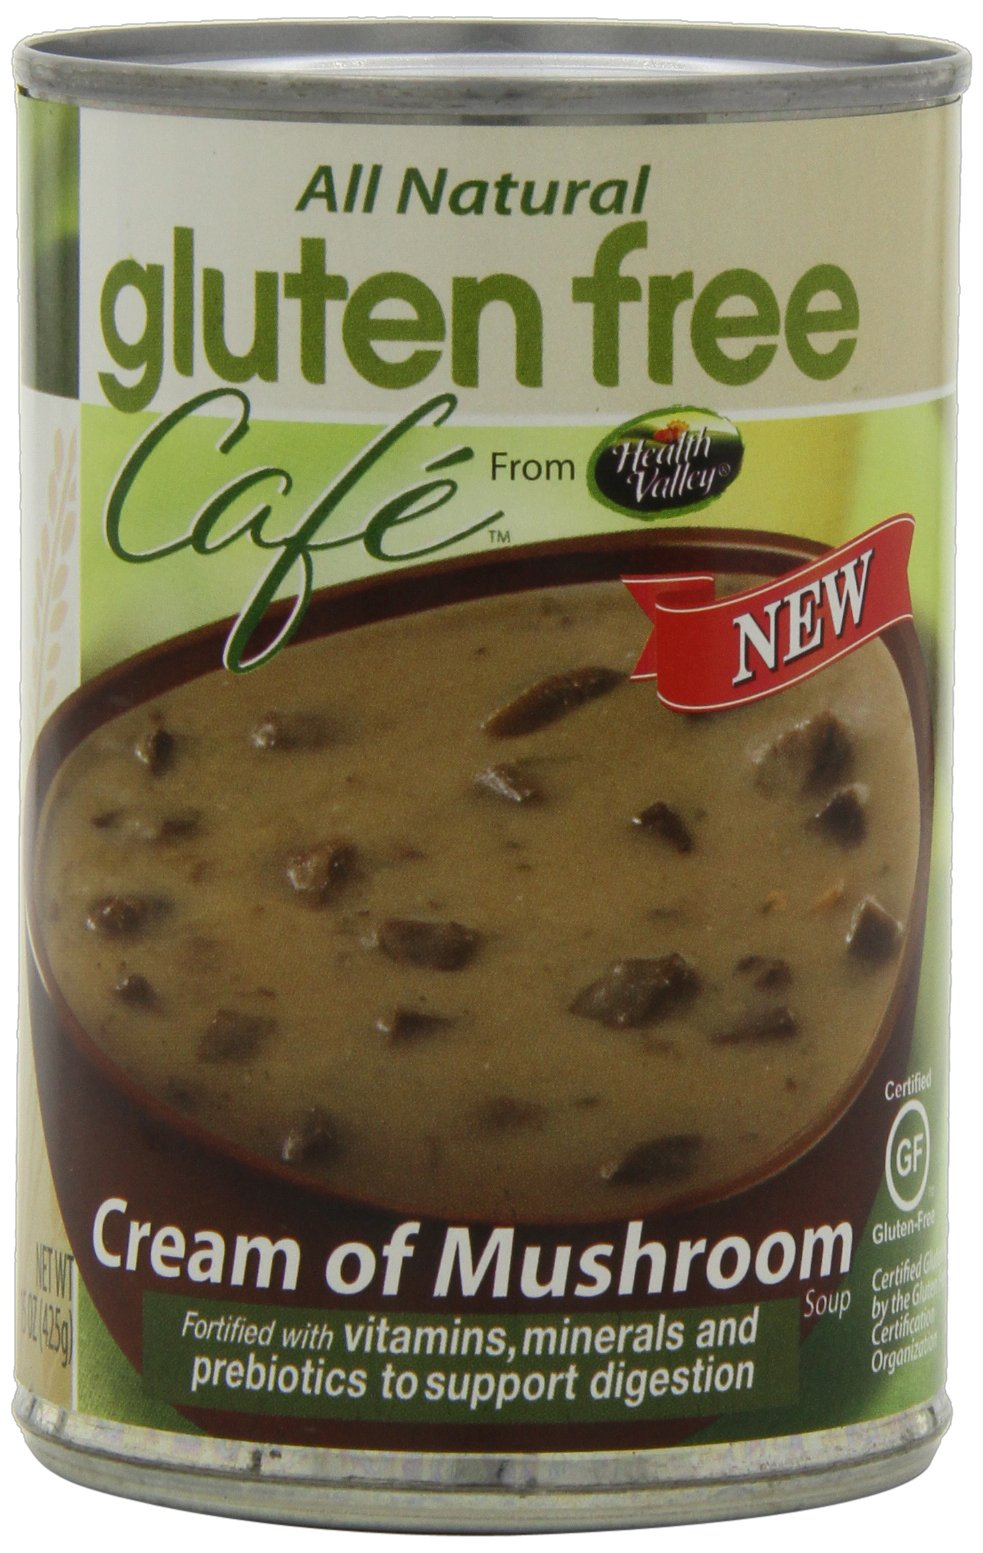 Gluten Free Cafe Cream of Mushroom Soup, 15 Ounce (Pack of 12) by Gluten Free Cafe